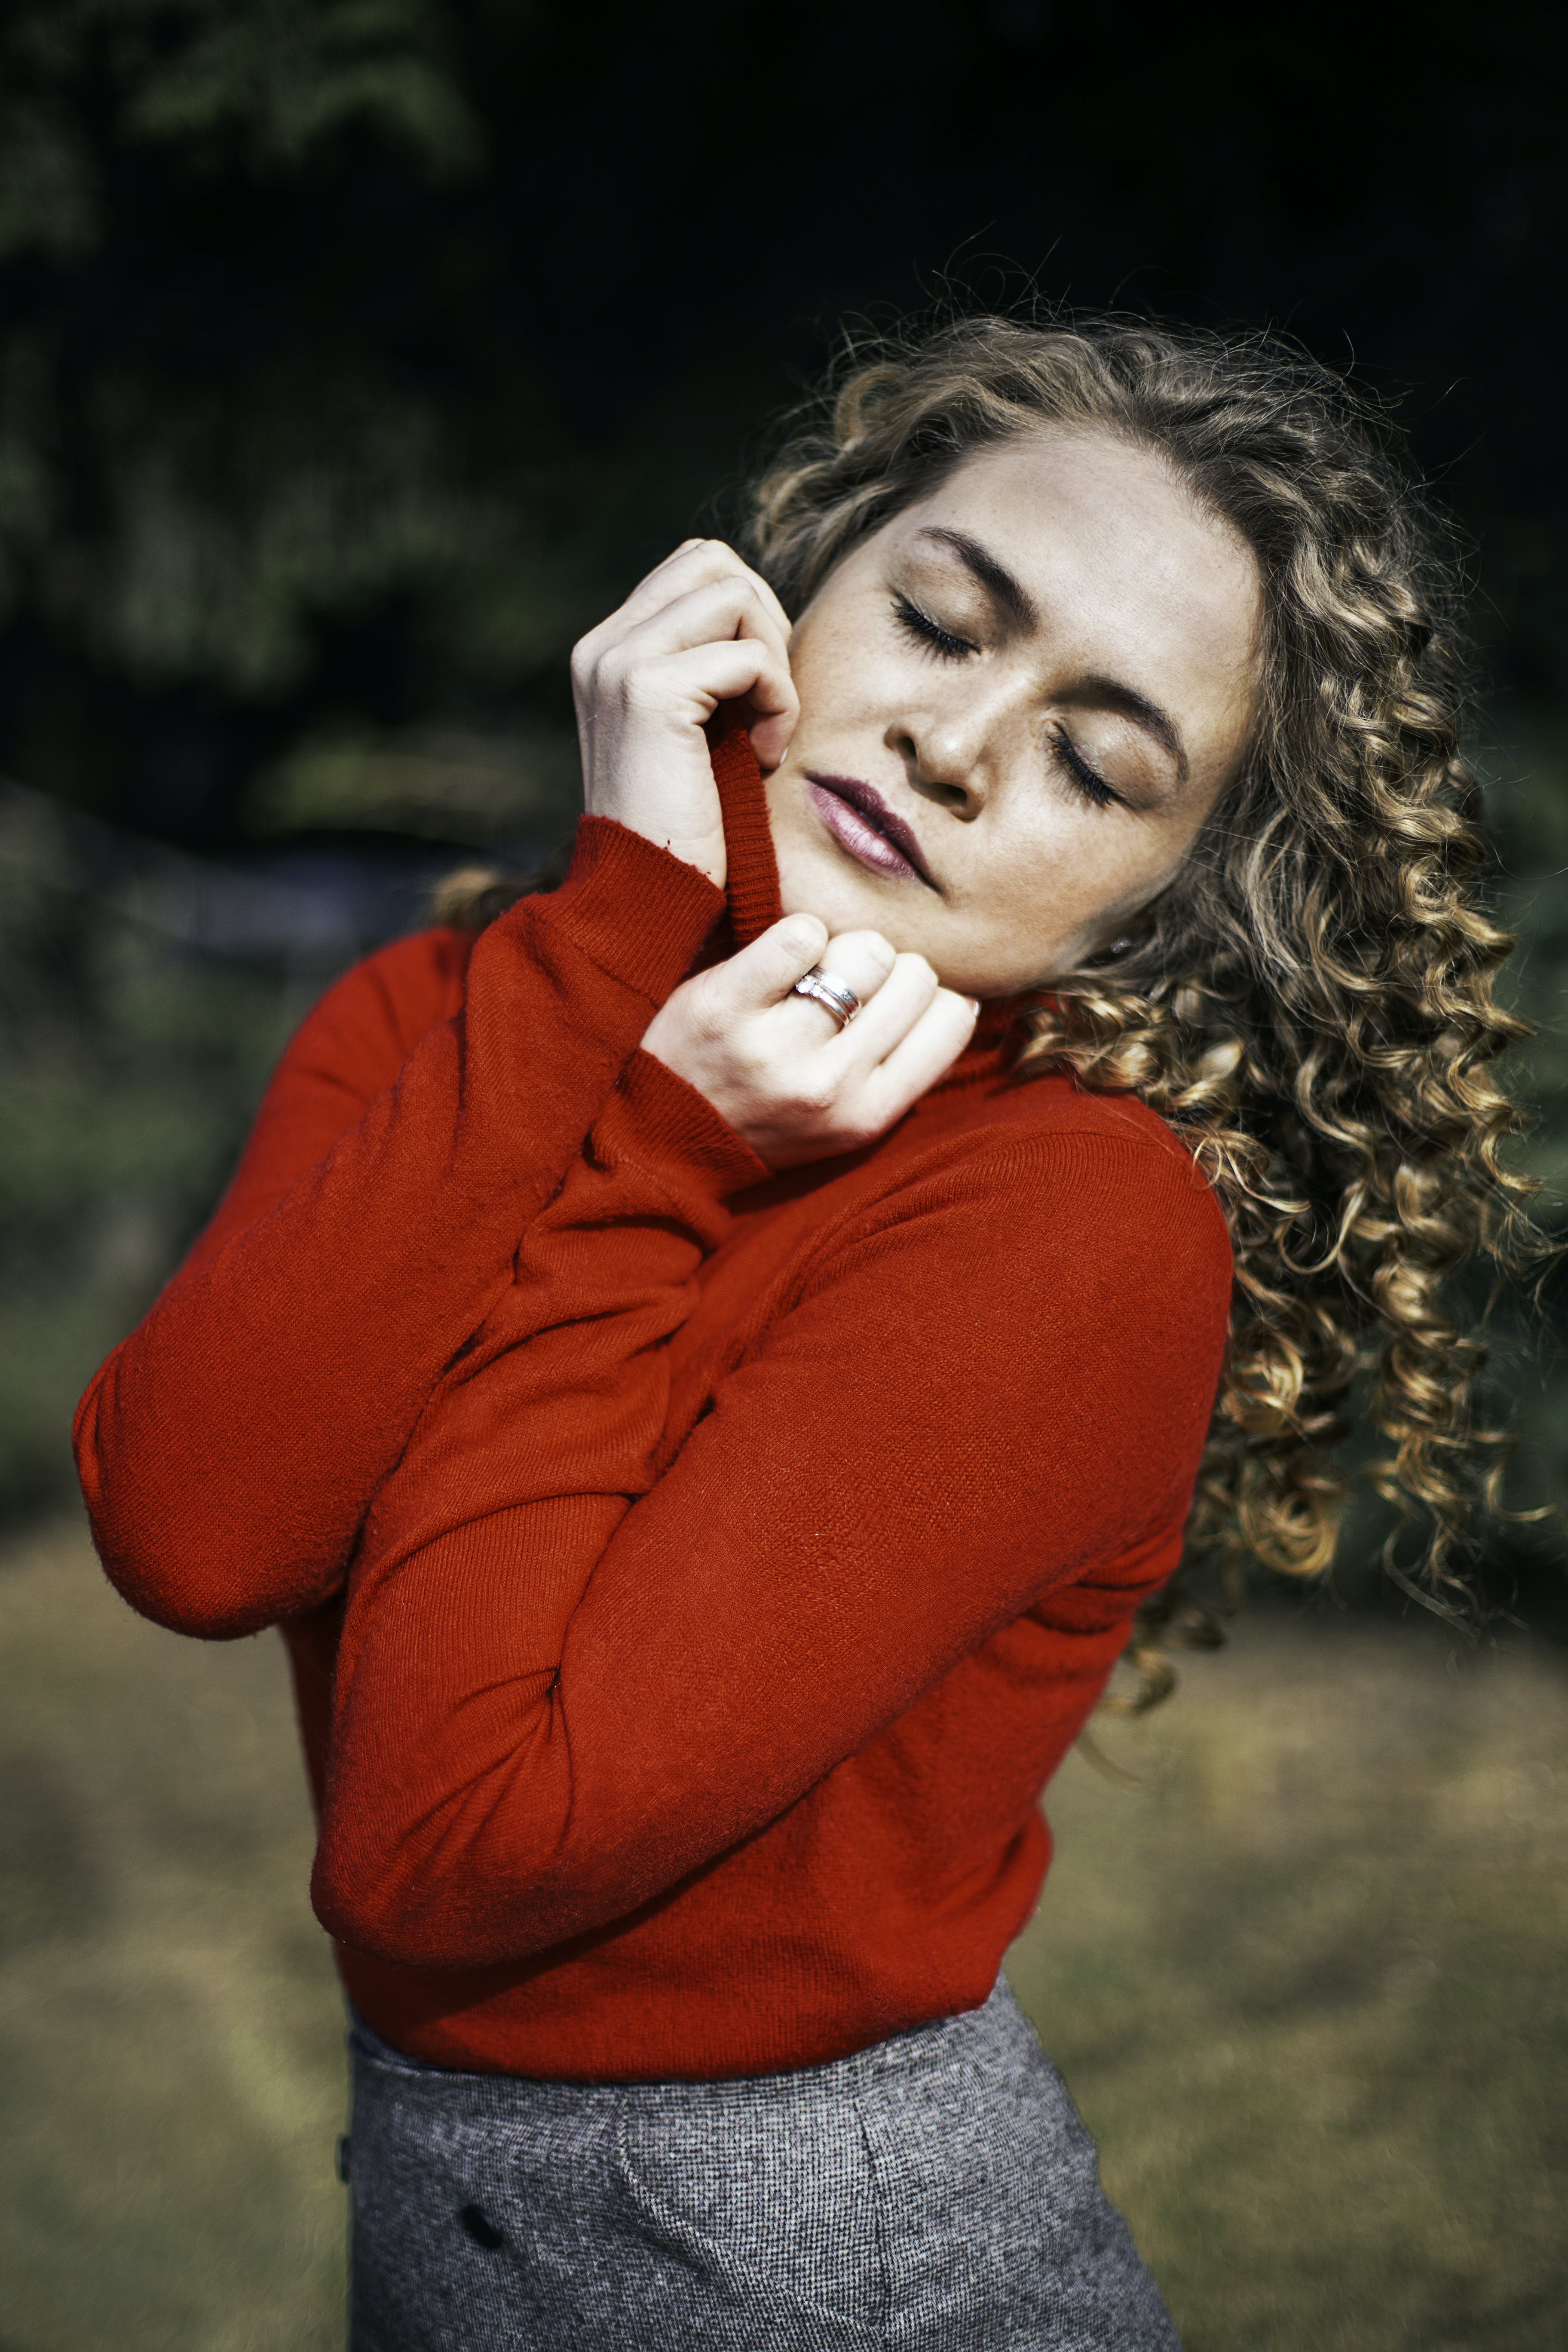 Woman Wearing Red Long-sleeved Top